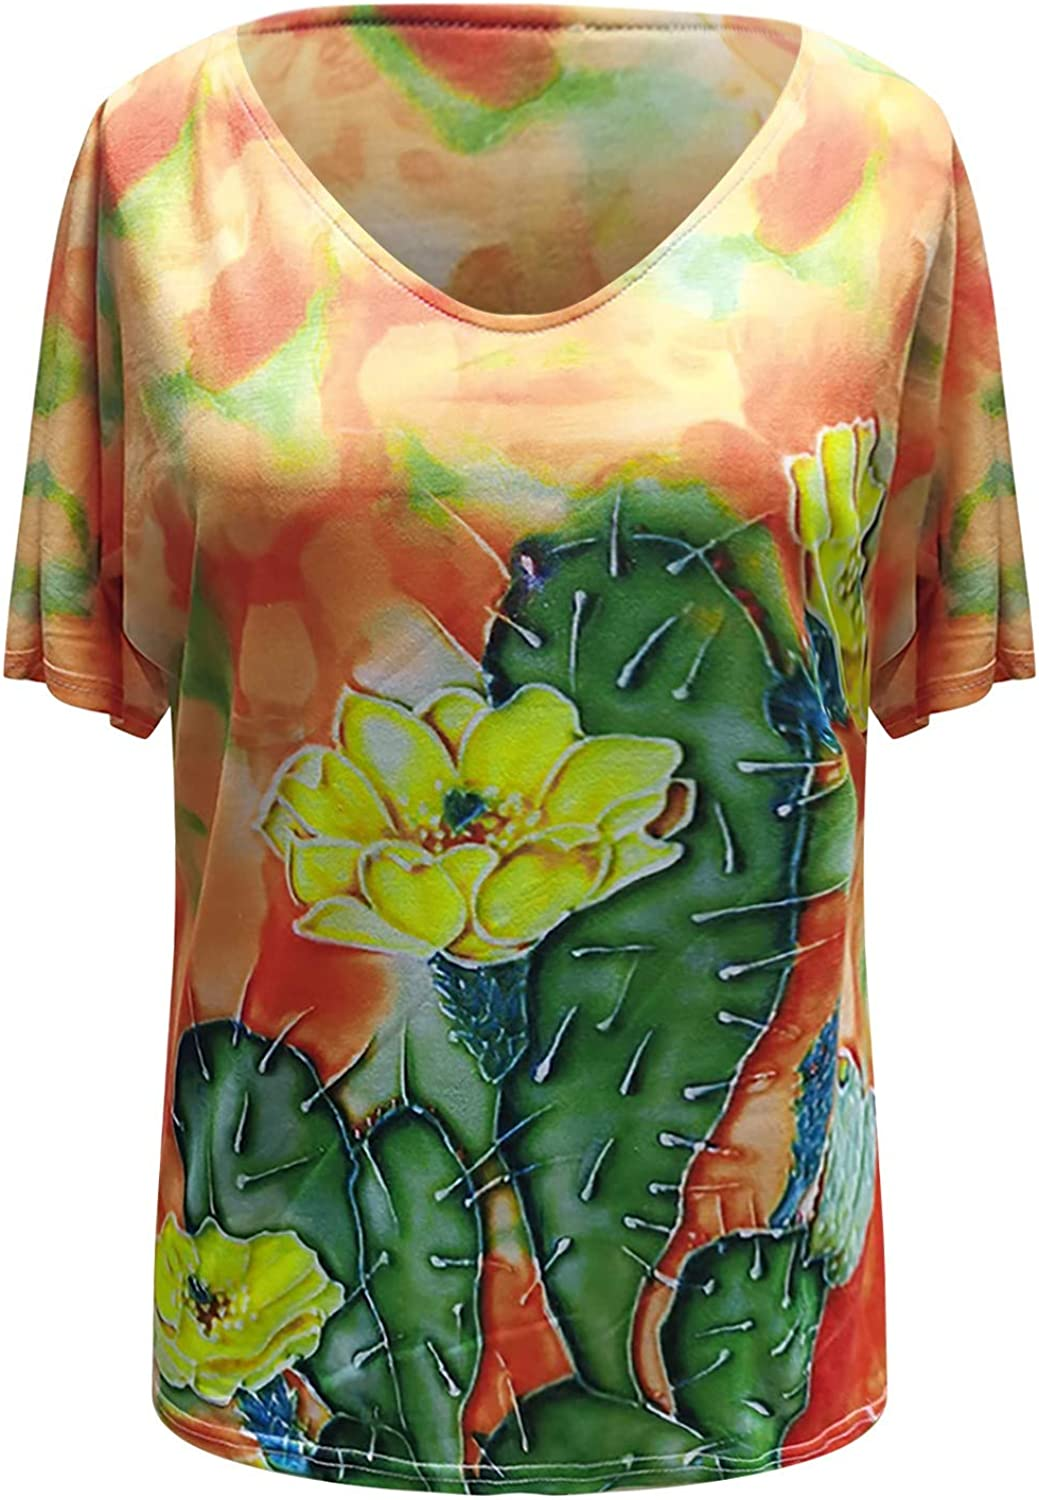 Womens Tops 3D Printed Fascinating Short Sleeve V Neck Tops Tee T-Shirt Blouse Loose Plus Size